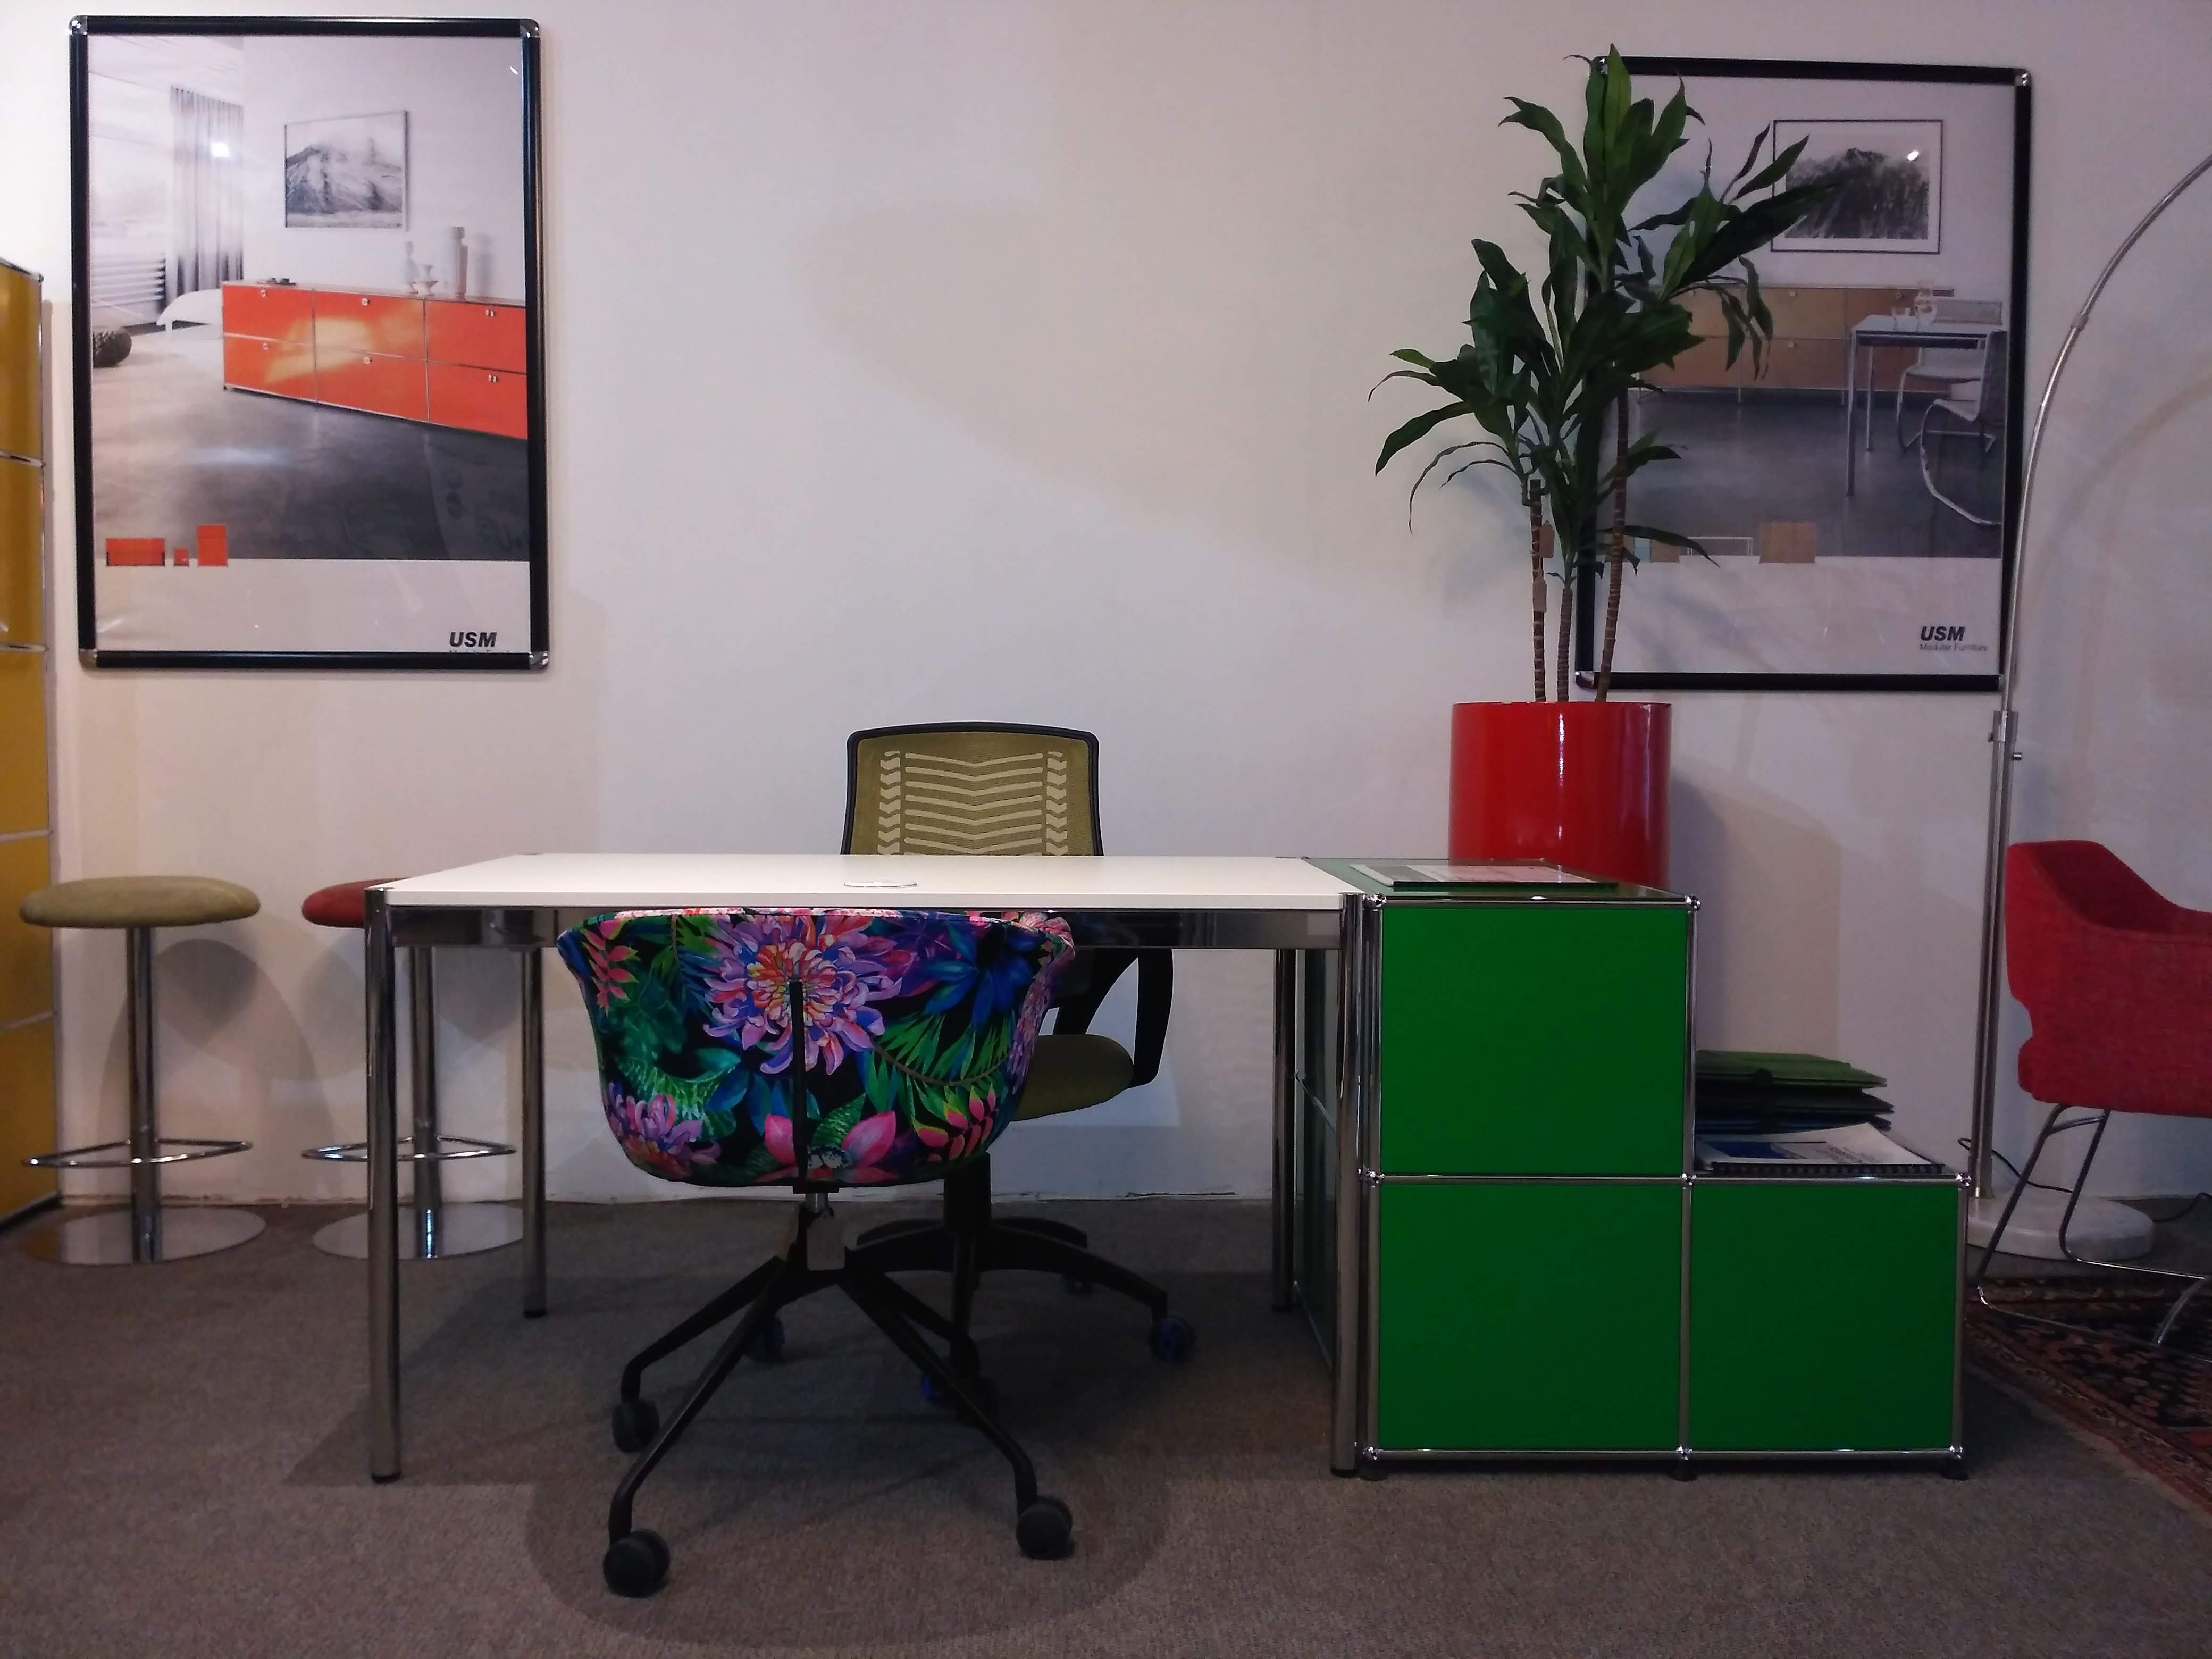 From Switzerland to South Africa: New collection of USM Modular Furniture on display in Johannesburg